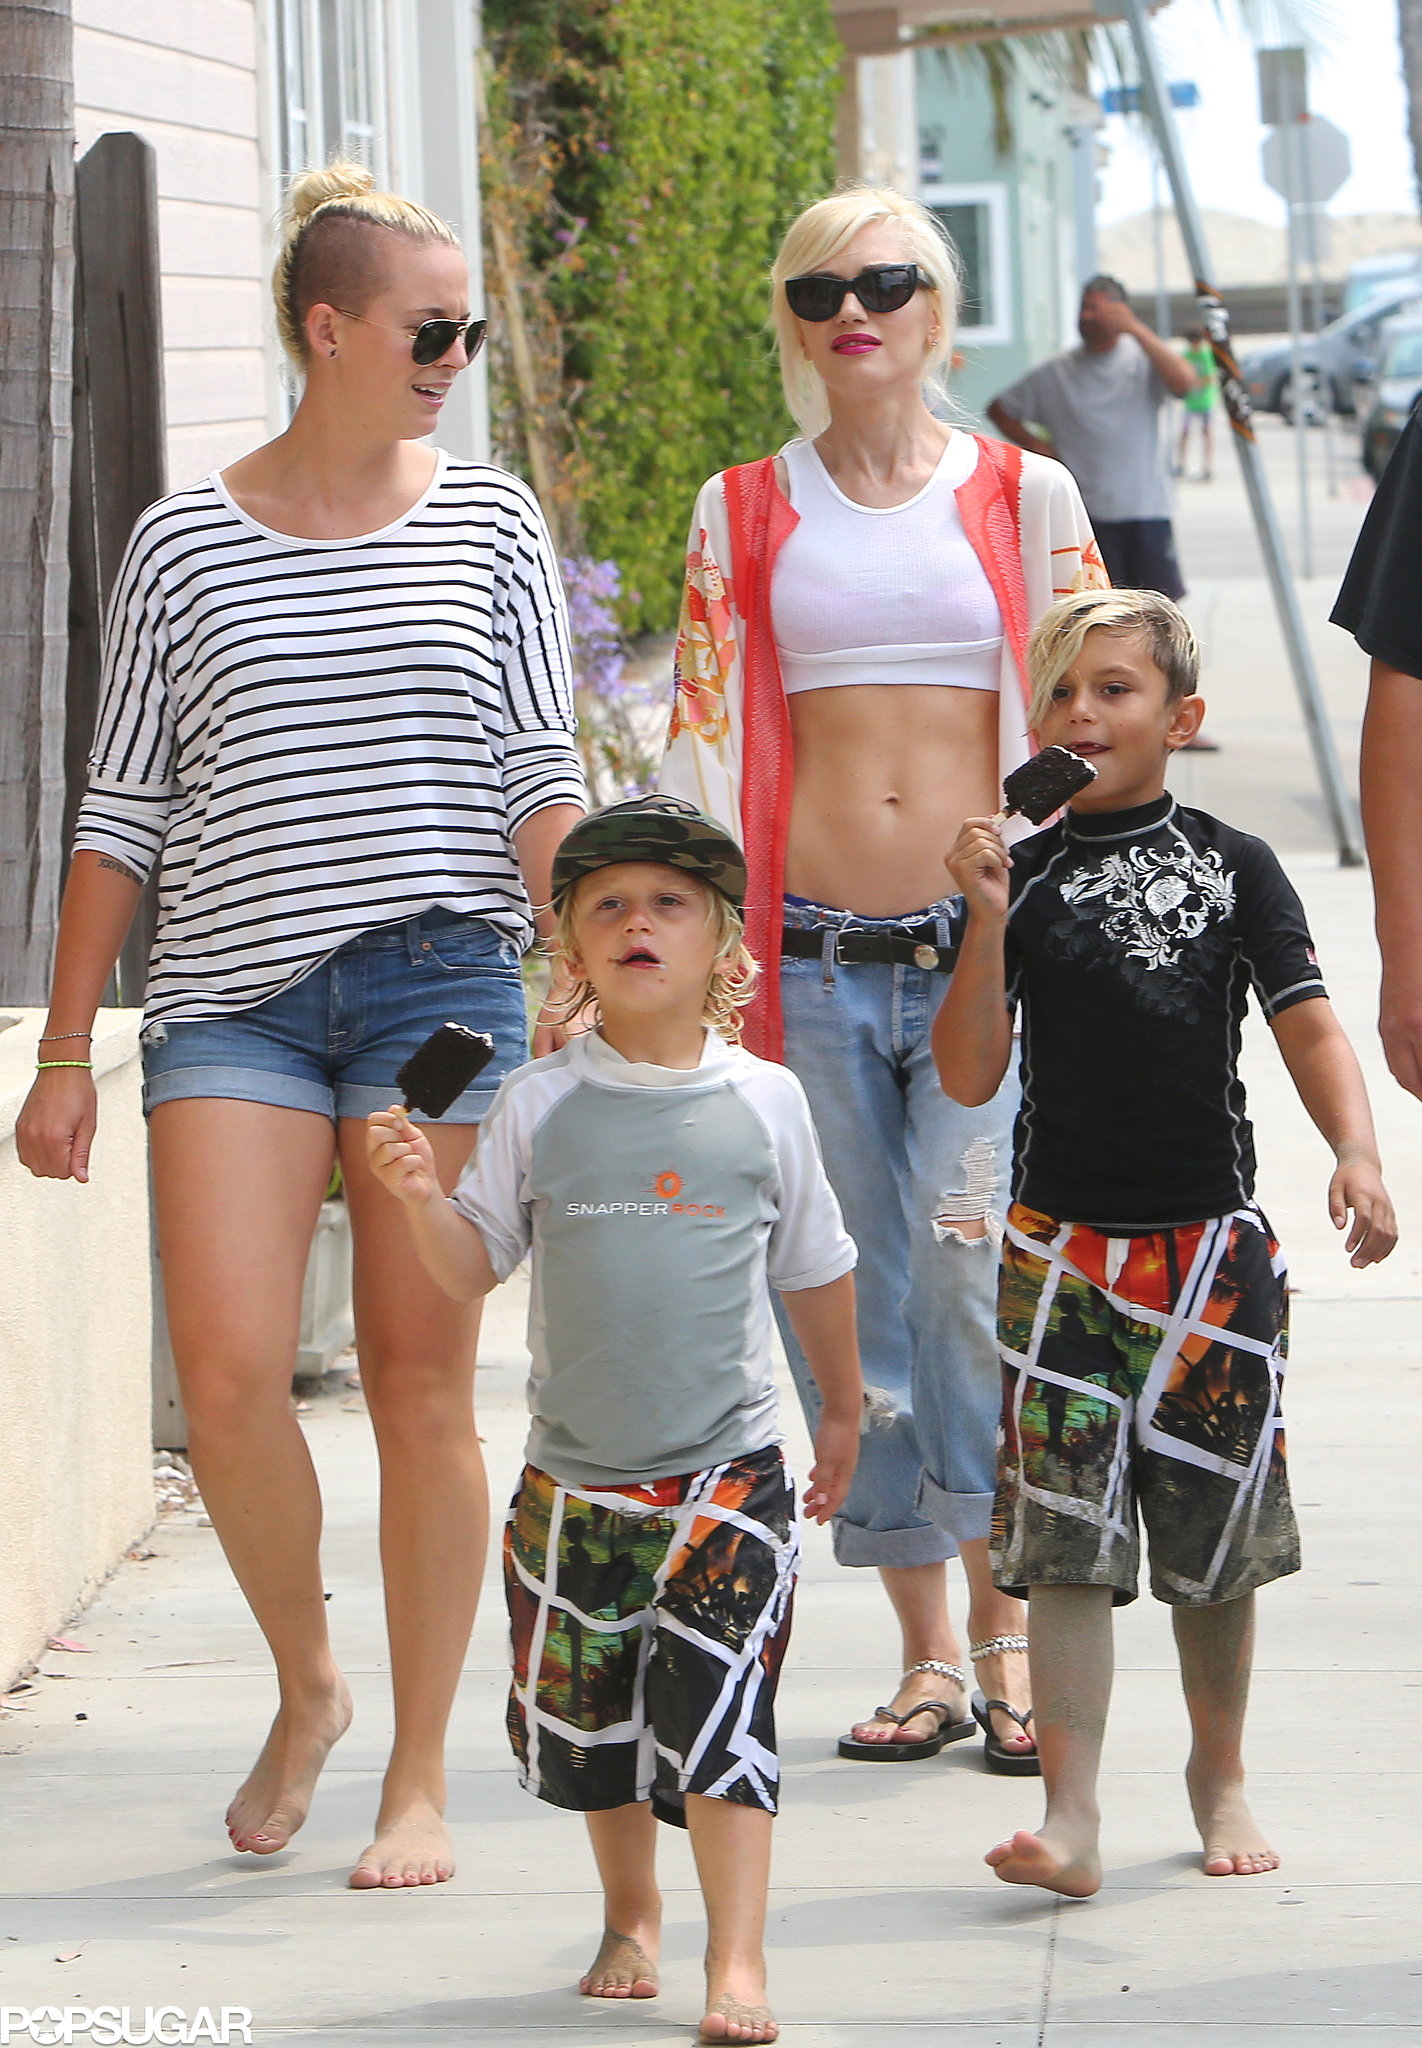 Gwen Stefani walked with her sons and a friend.